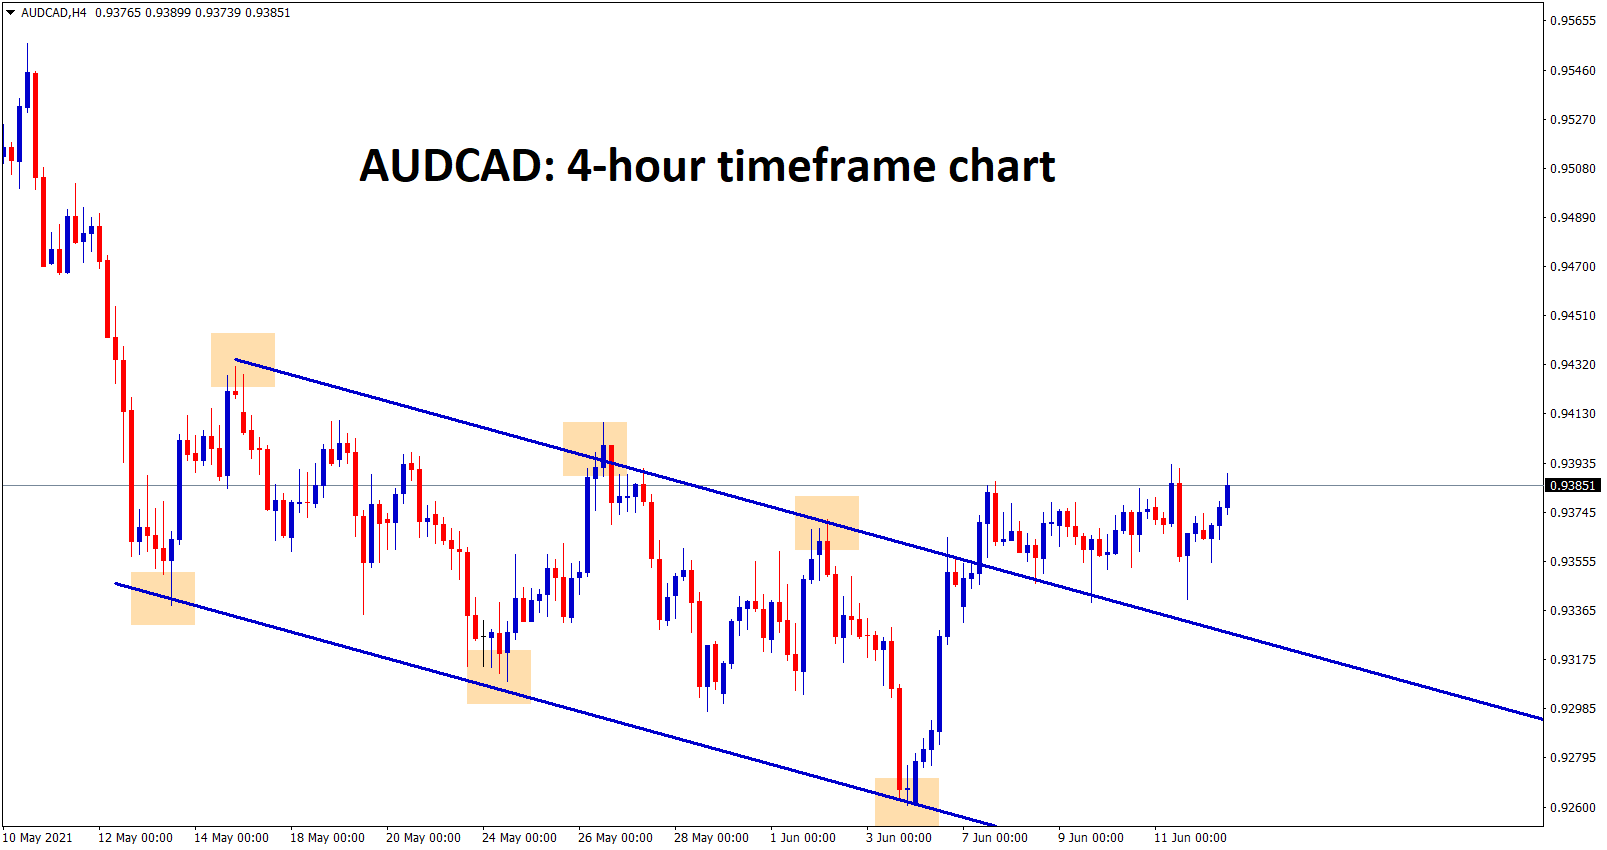 AUDCAD is consolidating after breaking the top of the downtrend line